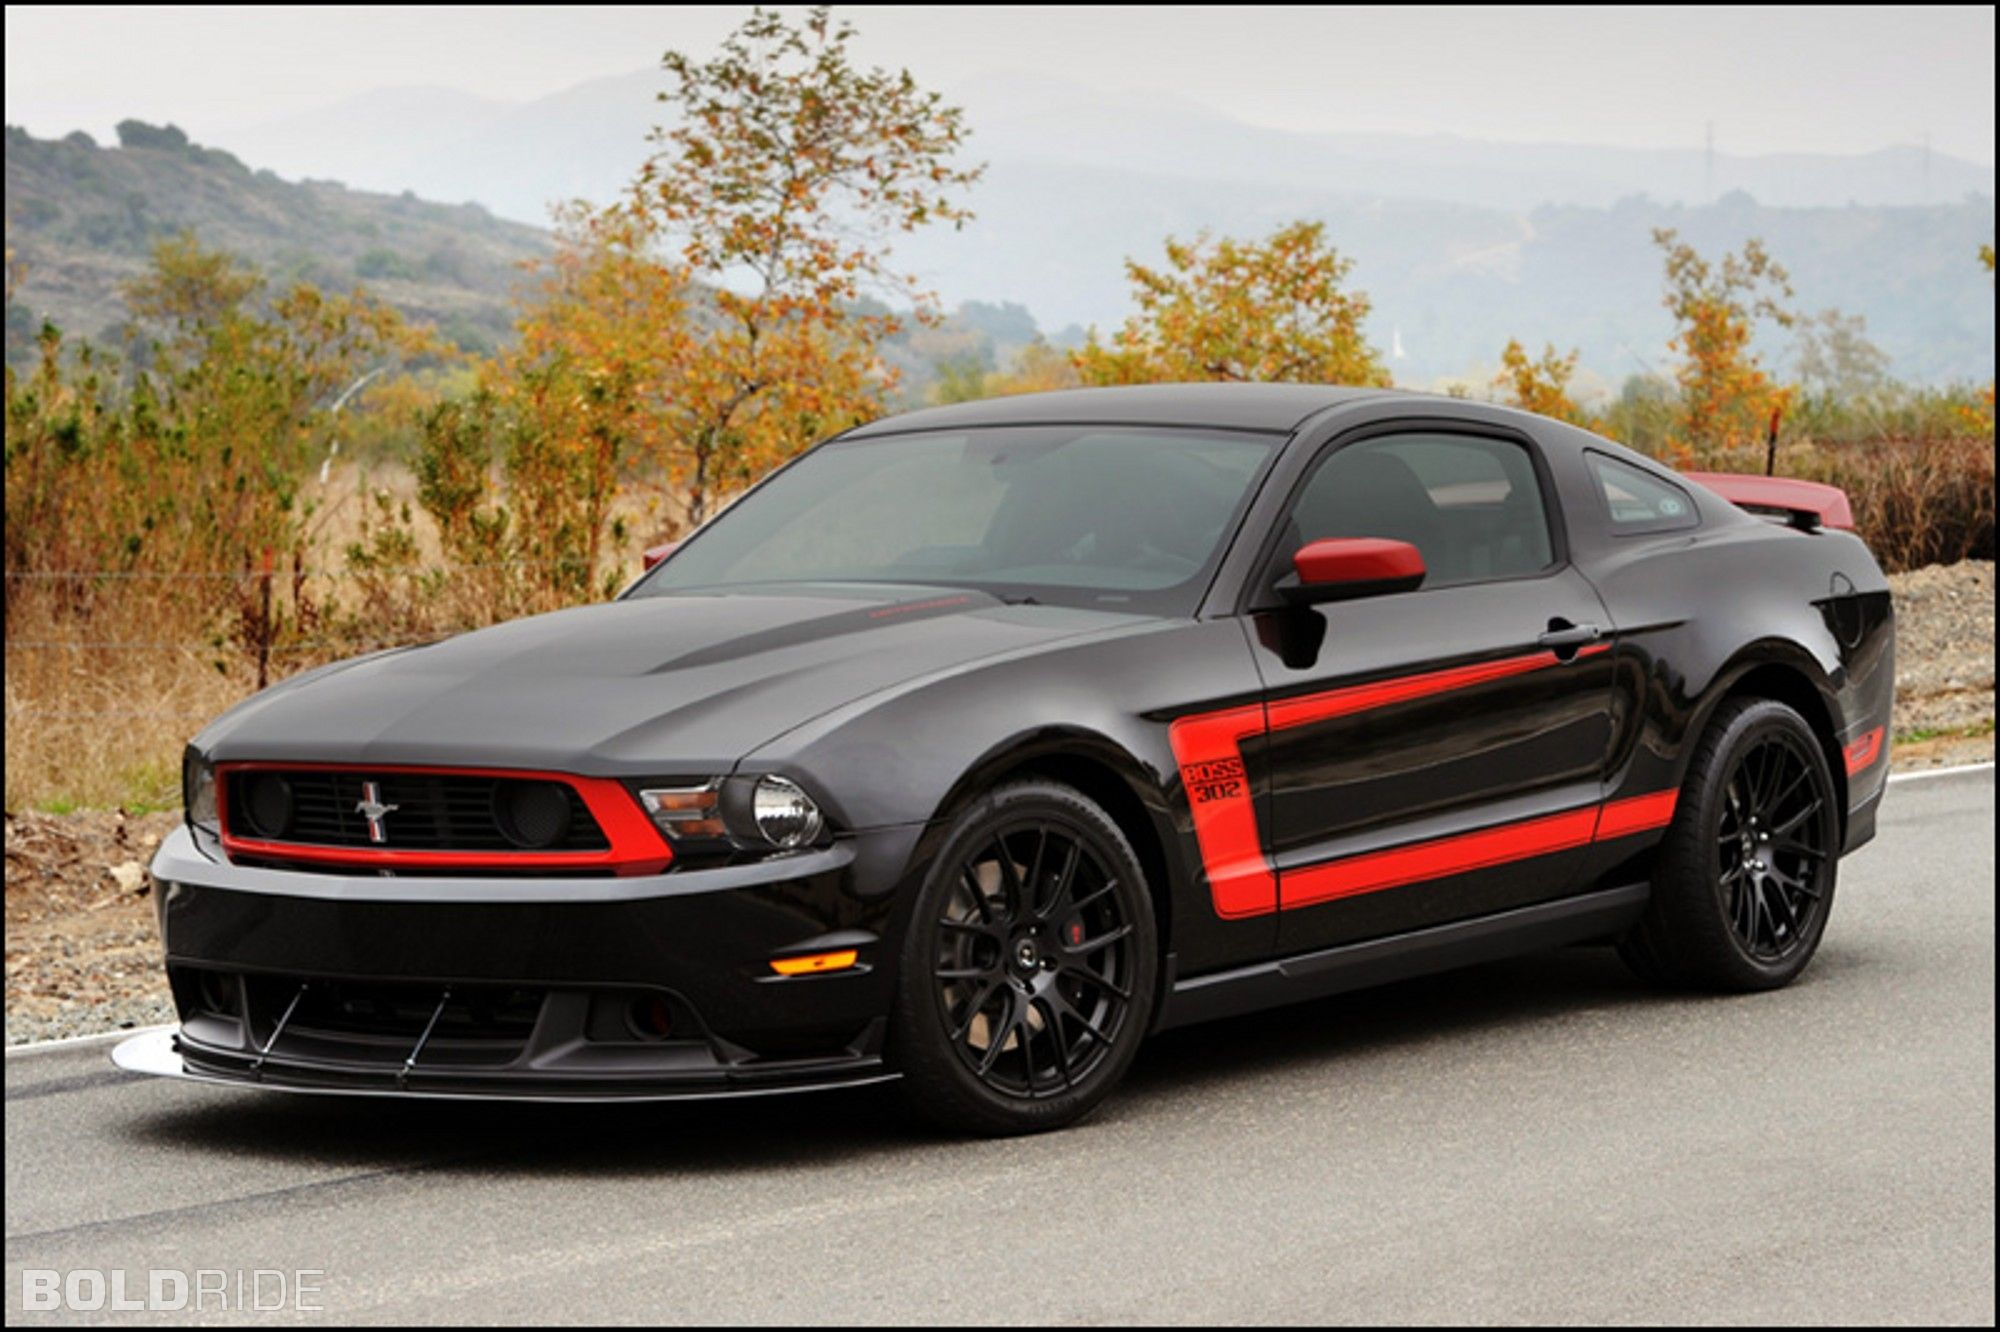 2000 ford mustang convertible ford mustang. Black Bedroom Furniture Sets. Home Design Ideas